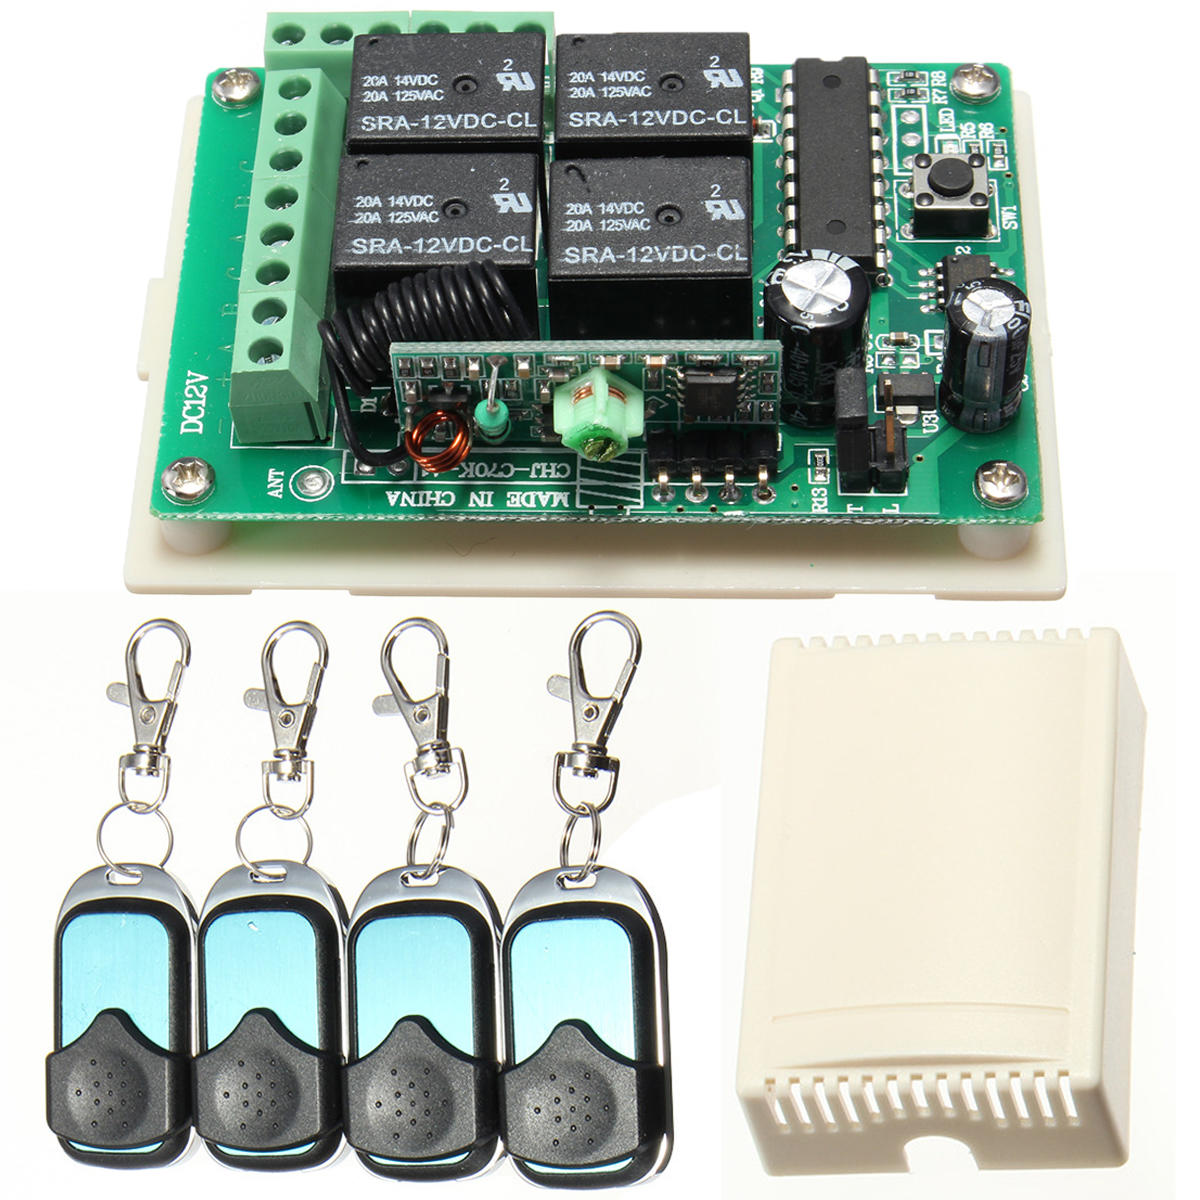 Hcs301 433mhz Rolling Code Remote Controller Wireless Power Supply 433 Mhz Receiver Raspberry Circuit Autos Post Relay